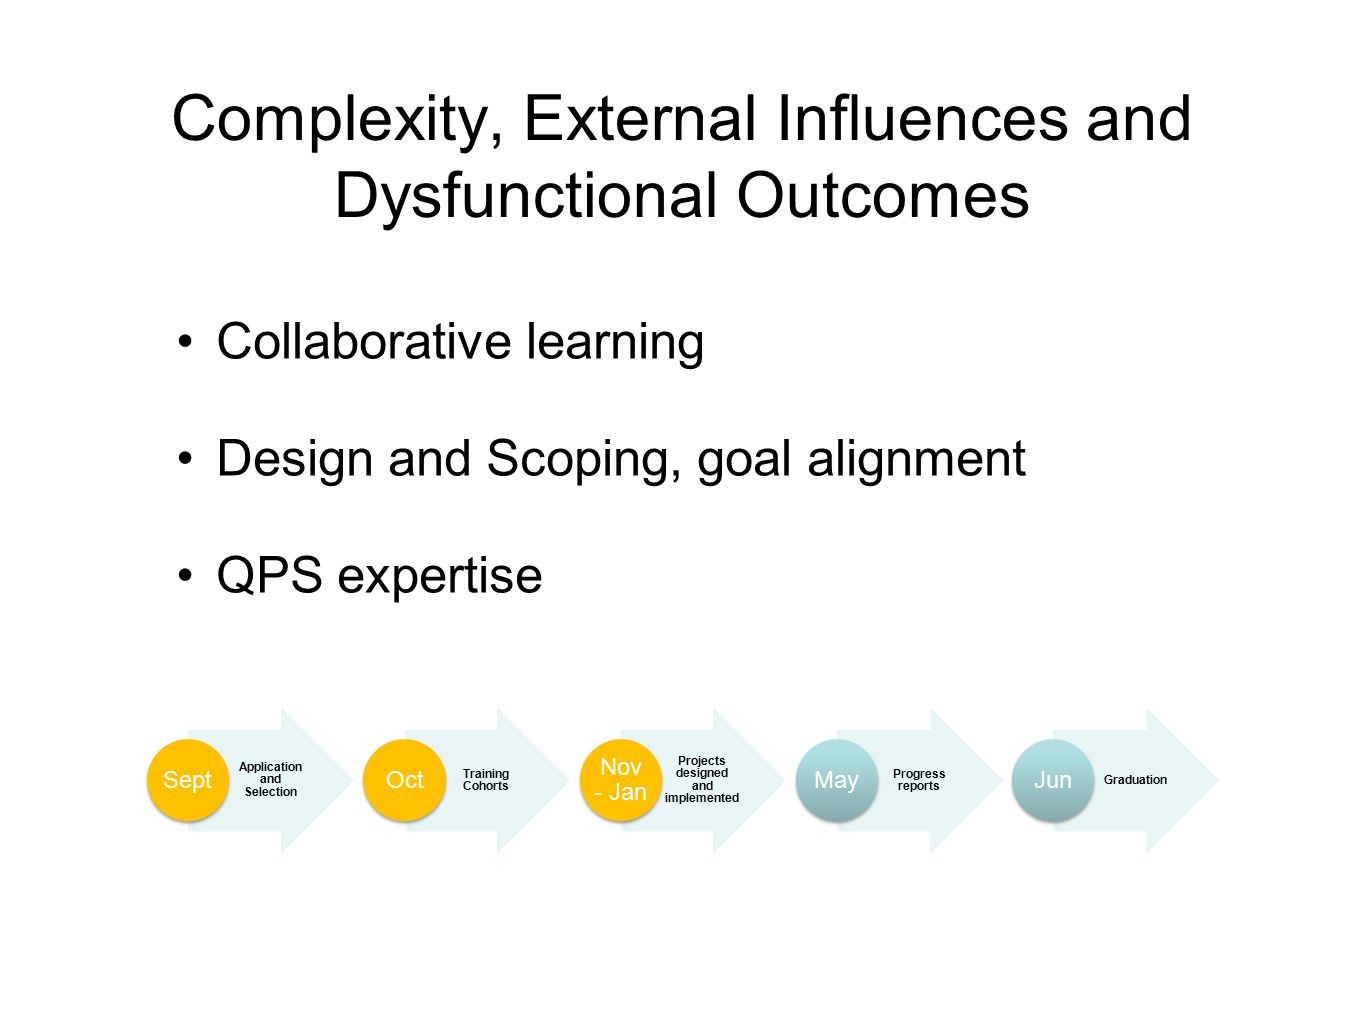 Complexity, External Influences and Dysfunctional Outcomes Collaborative learning Design and Scoping, goal alignment QPS expertise Application and Selection Sept Training Cohorts Oct Projects designed and implemented Nov - Jan Progress reports May Graduation Jun